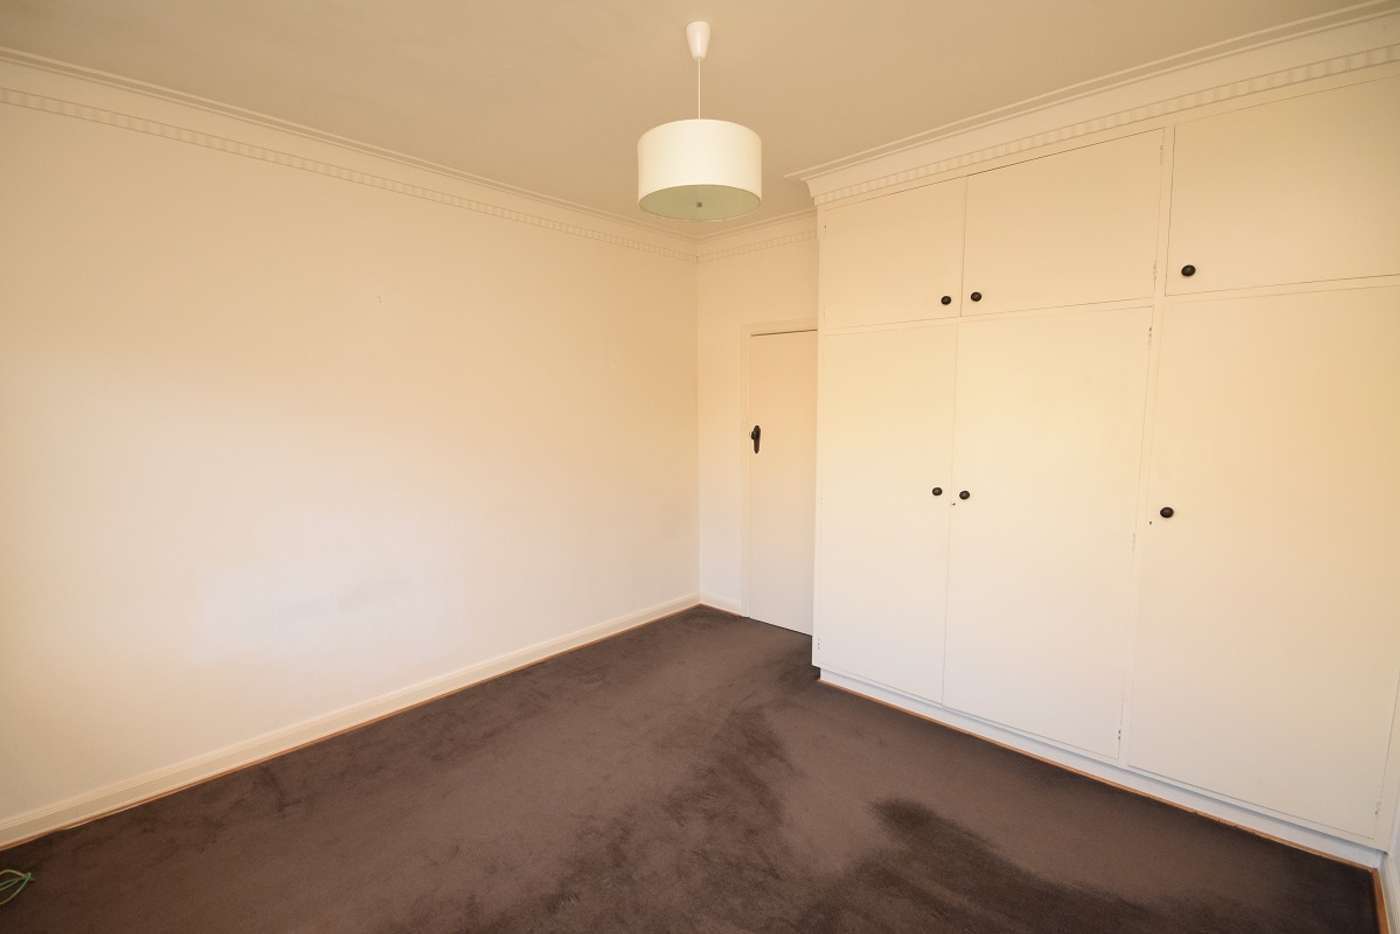 Seventh view of Homely apartment listing, 4/539 Orrong Road, Armadale VIC 3143